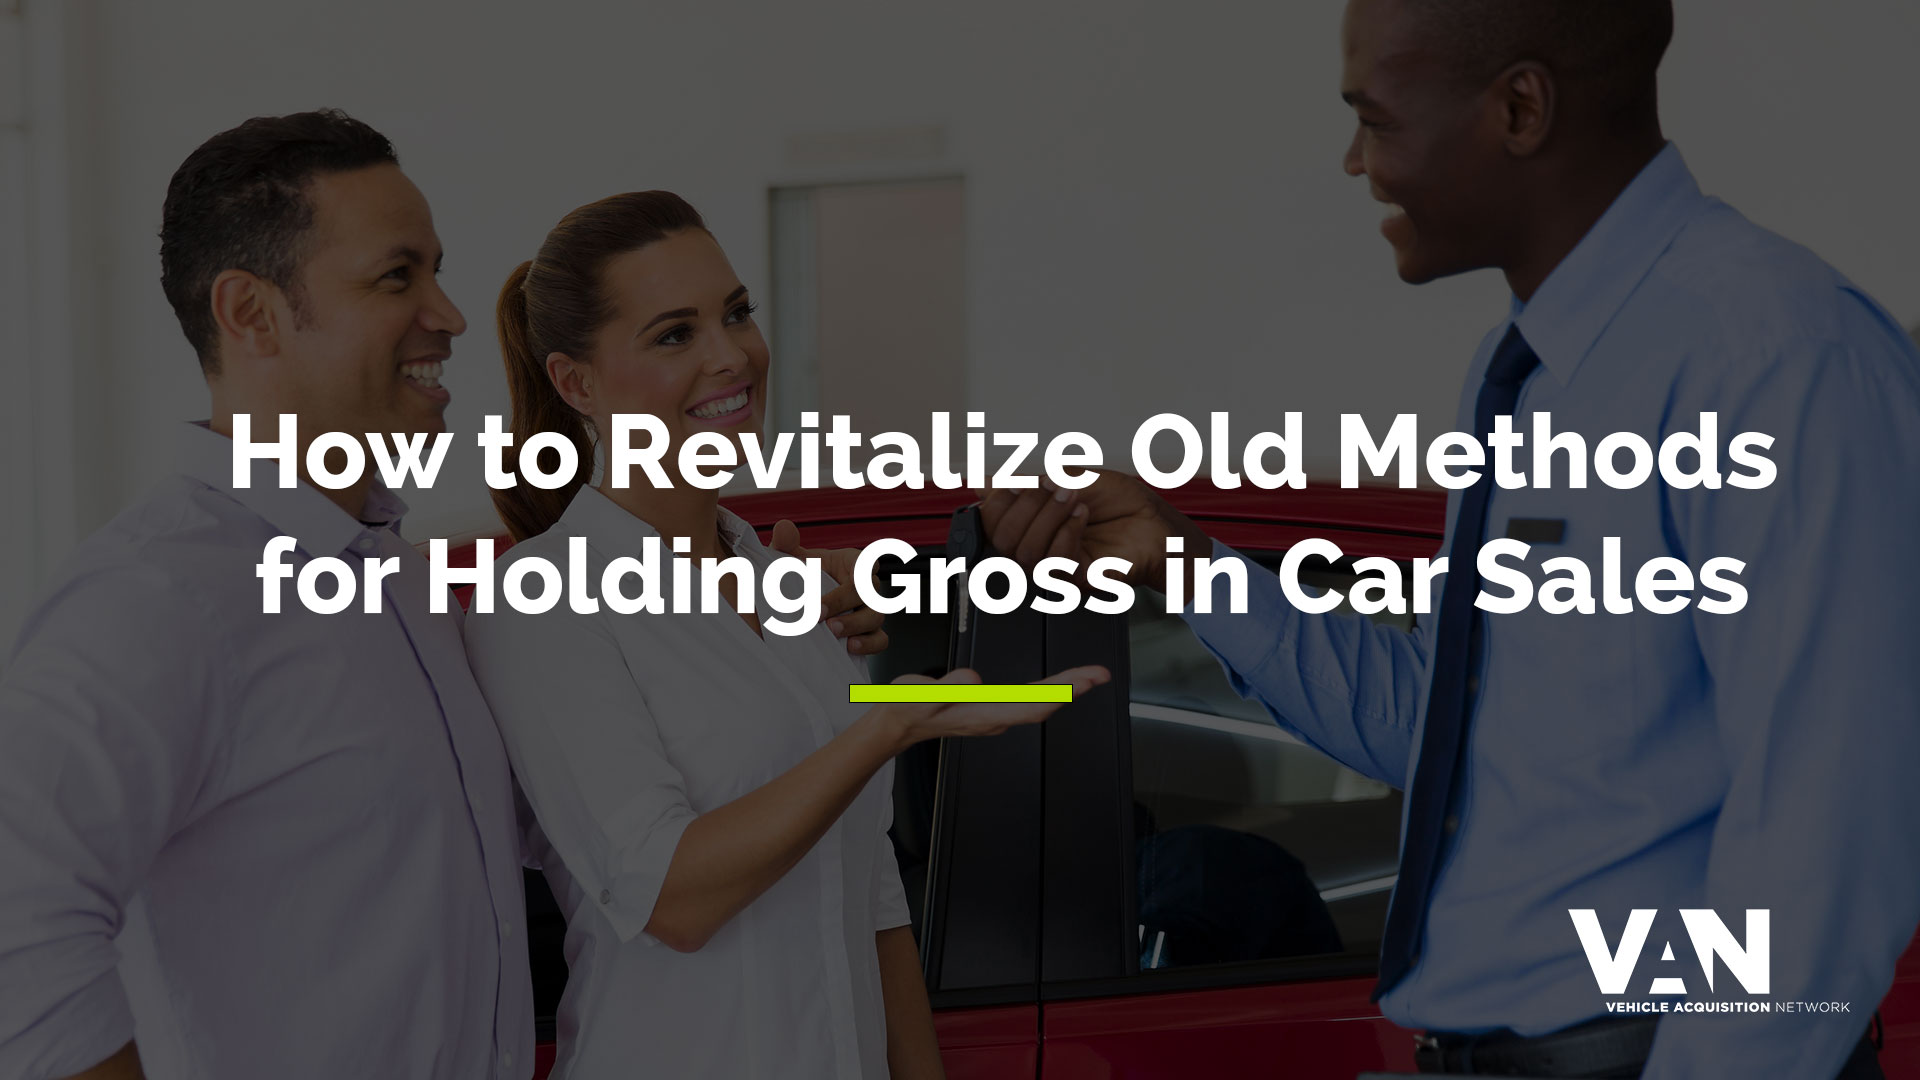 How to hold gross in car sales